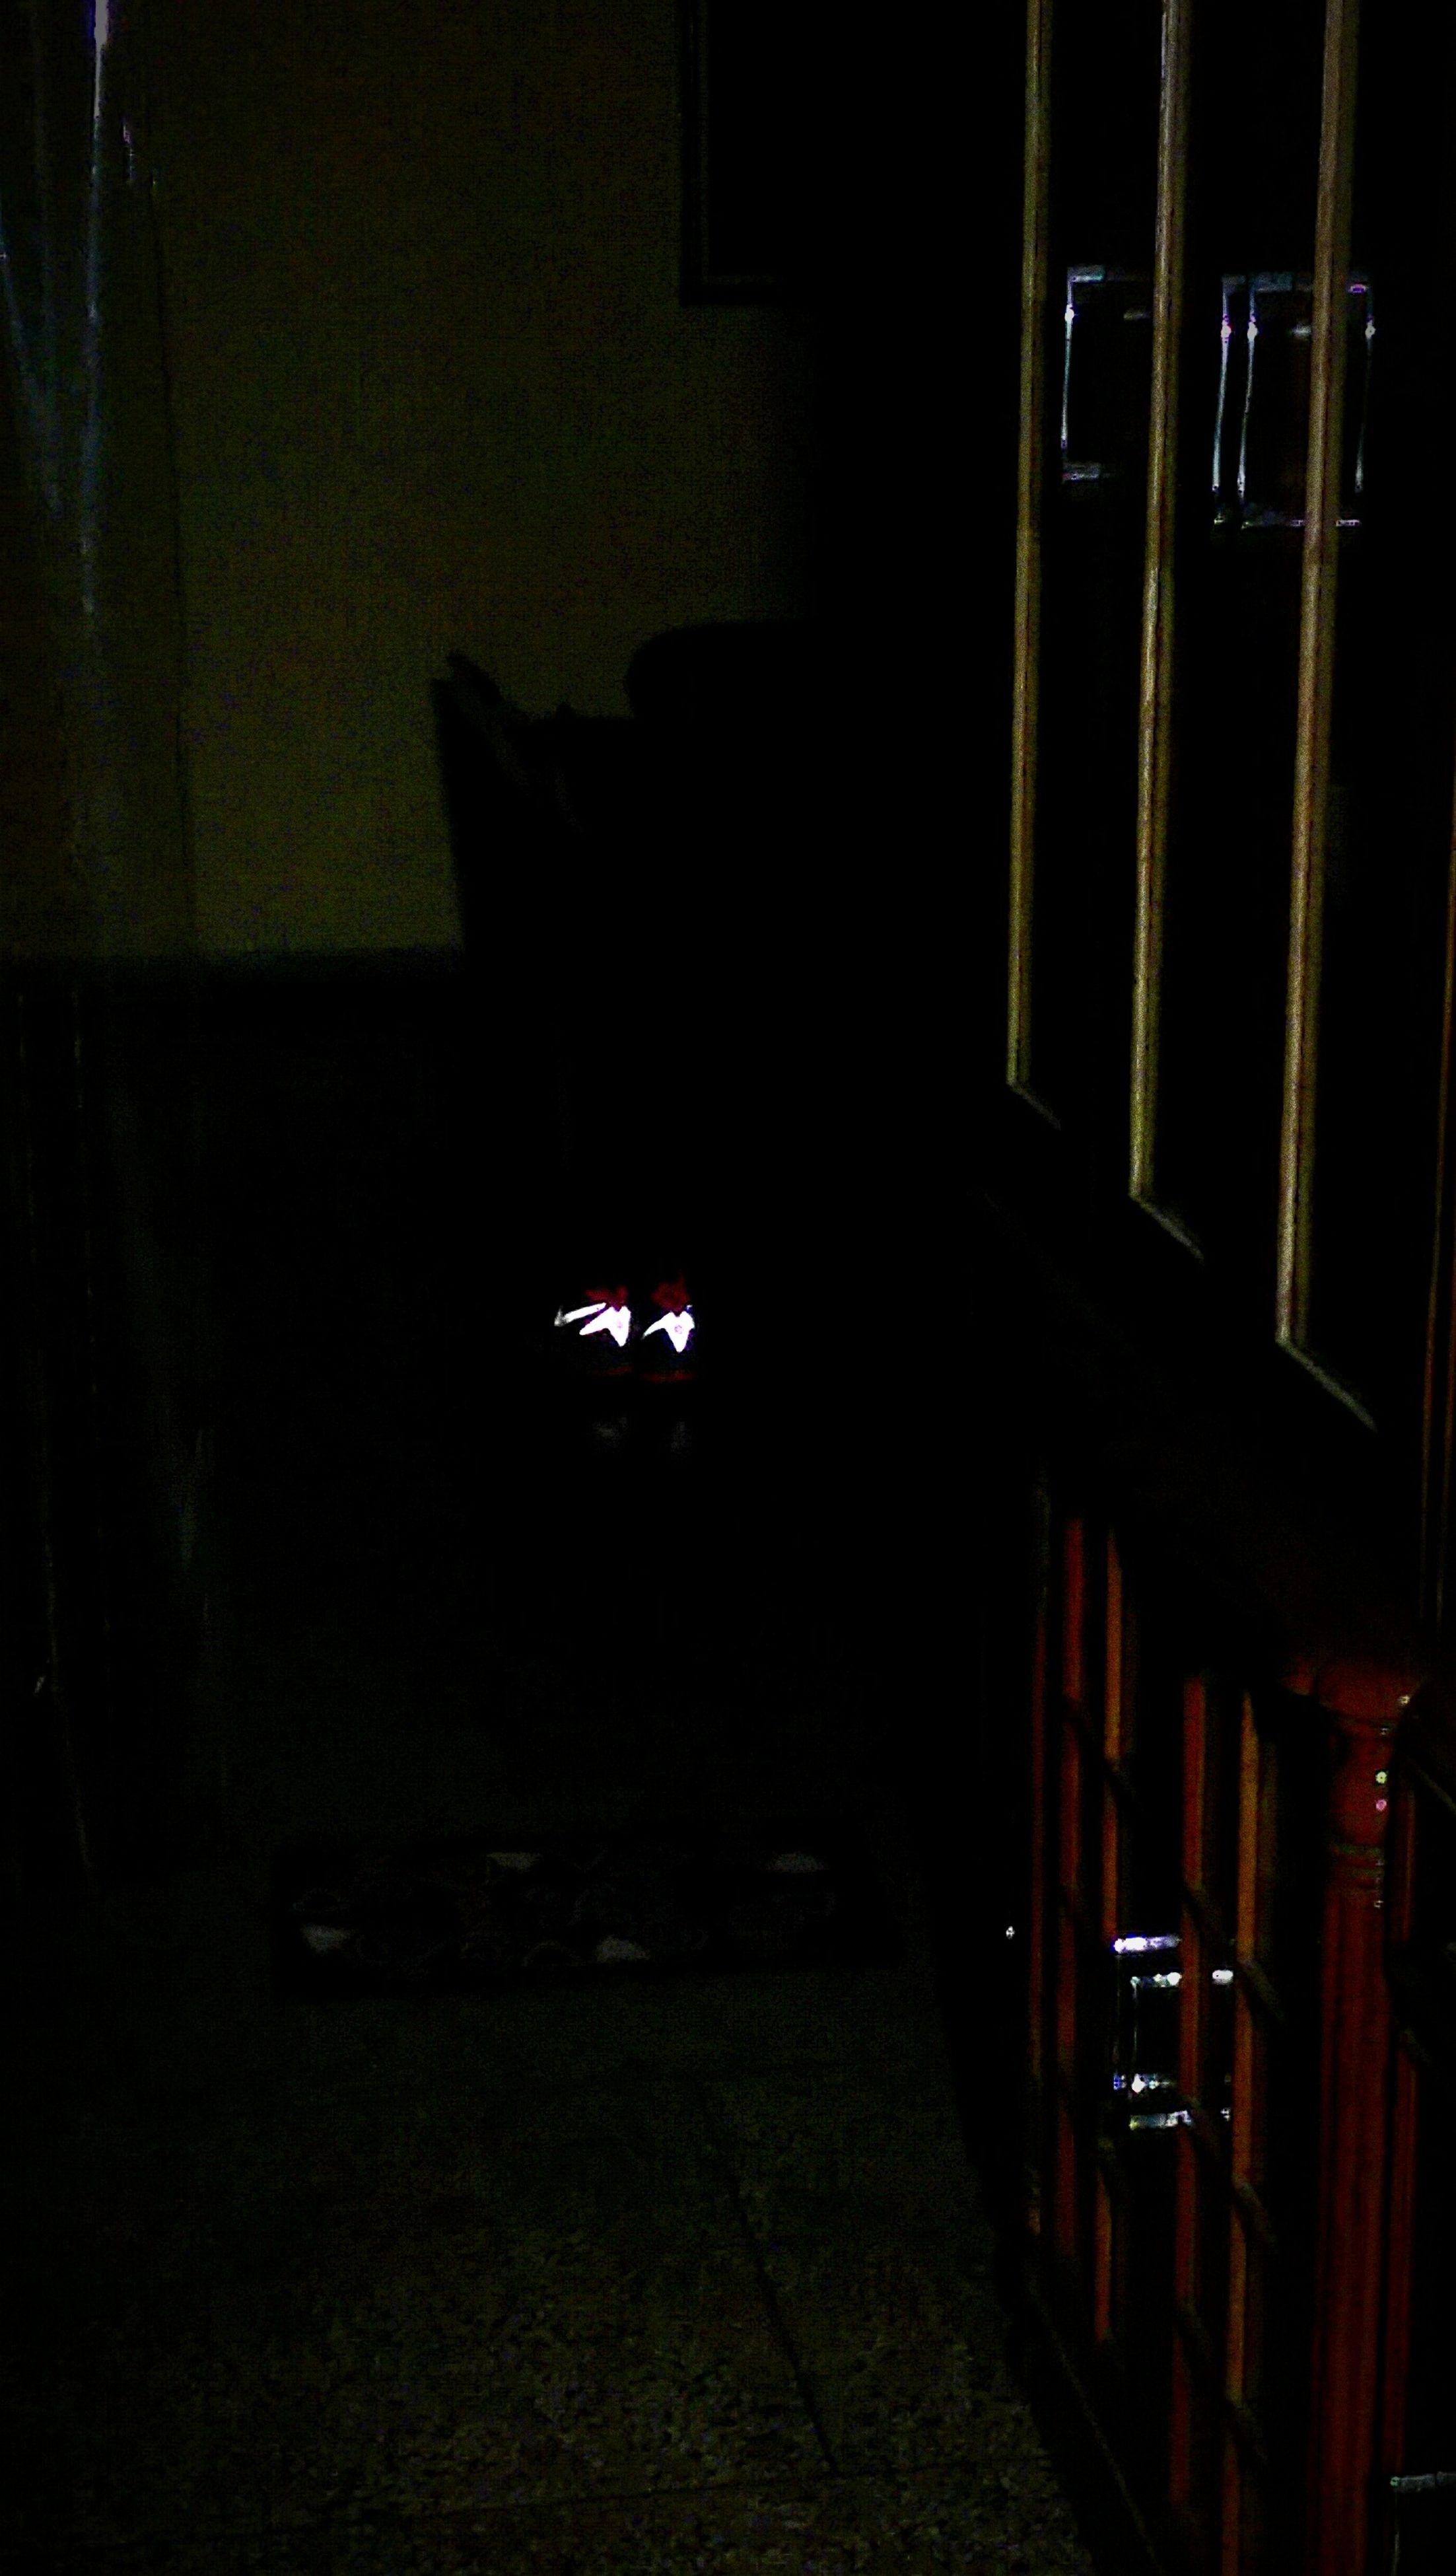 indoors, night, illuminated, dark, window, home interior, built structure, house, architecture, lighting equipment, room, shadow, darkroom, chair, no people, table, absence, domestic room, silhouette, light - natural phenomenon